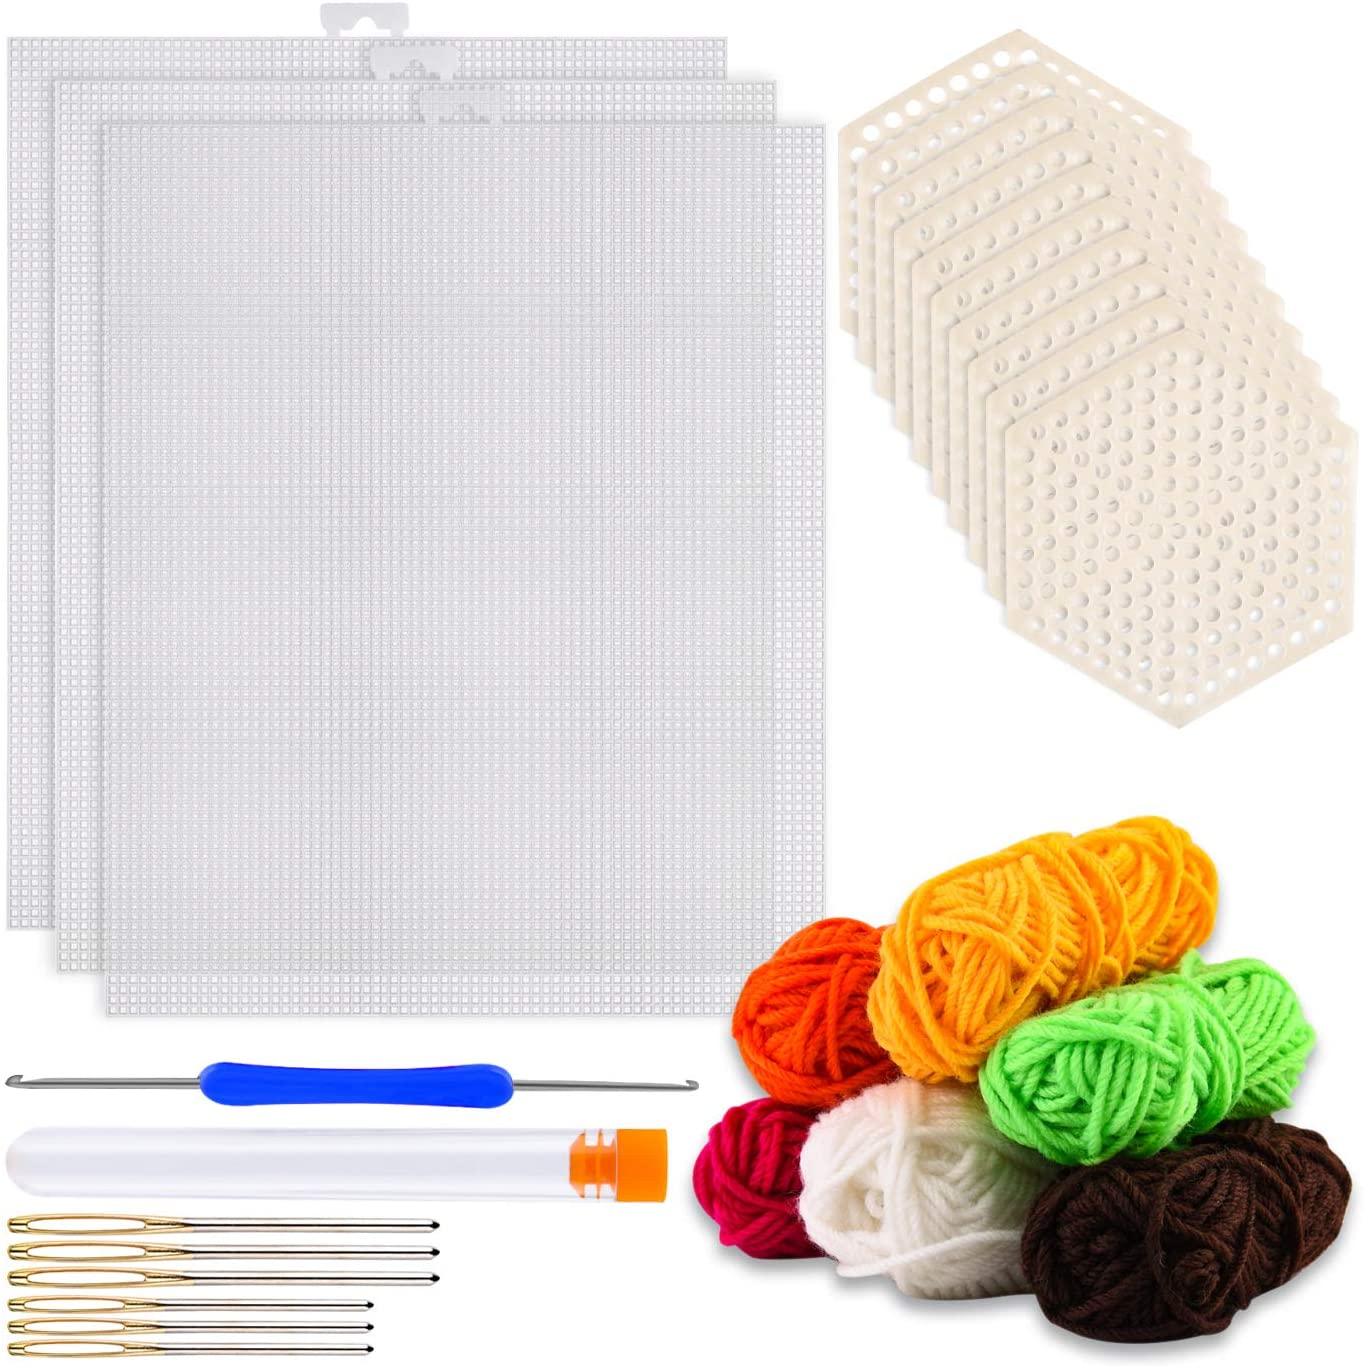 WXJ13 24 Pcs Clear Plastic Mesh Canvas Kit Including 15 Pack Clear Plastic Mesh Canvas Sheets, 6 Color Acrylic Yarn and Embroidery Tools for Embroidery Crafting